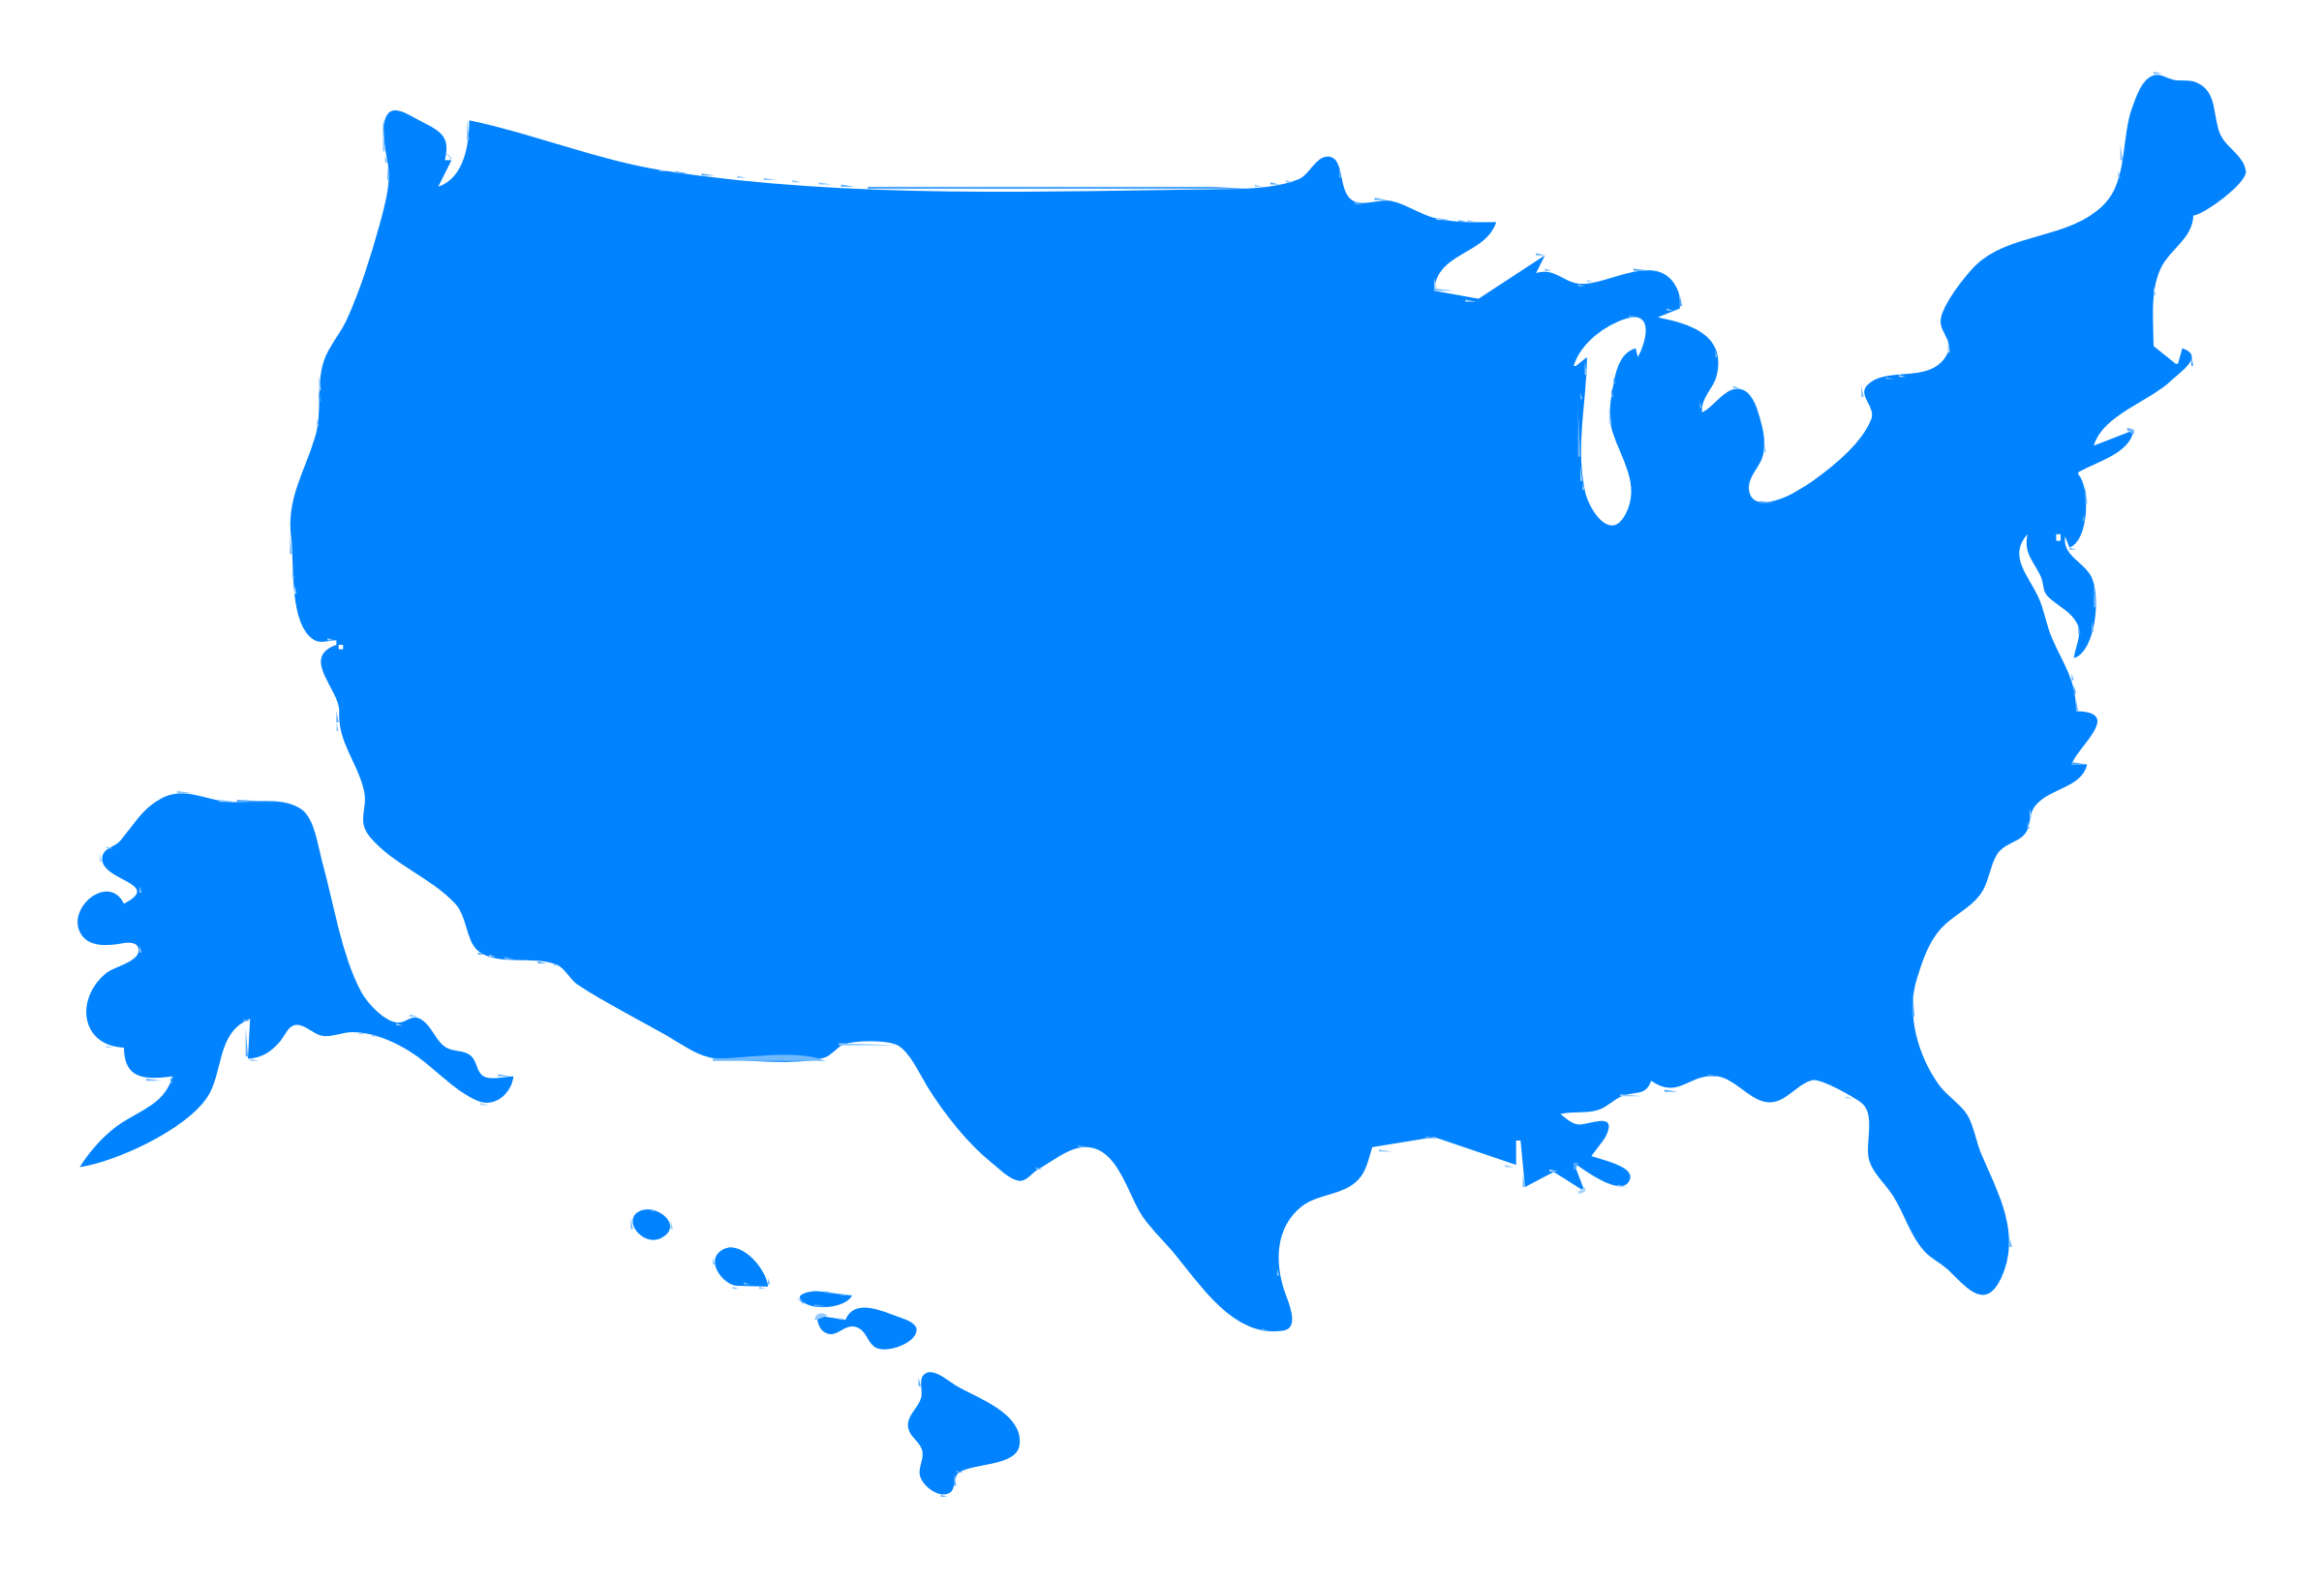 Us map clipart usa map .